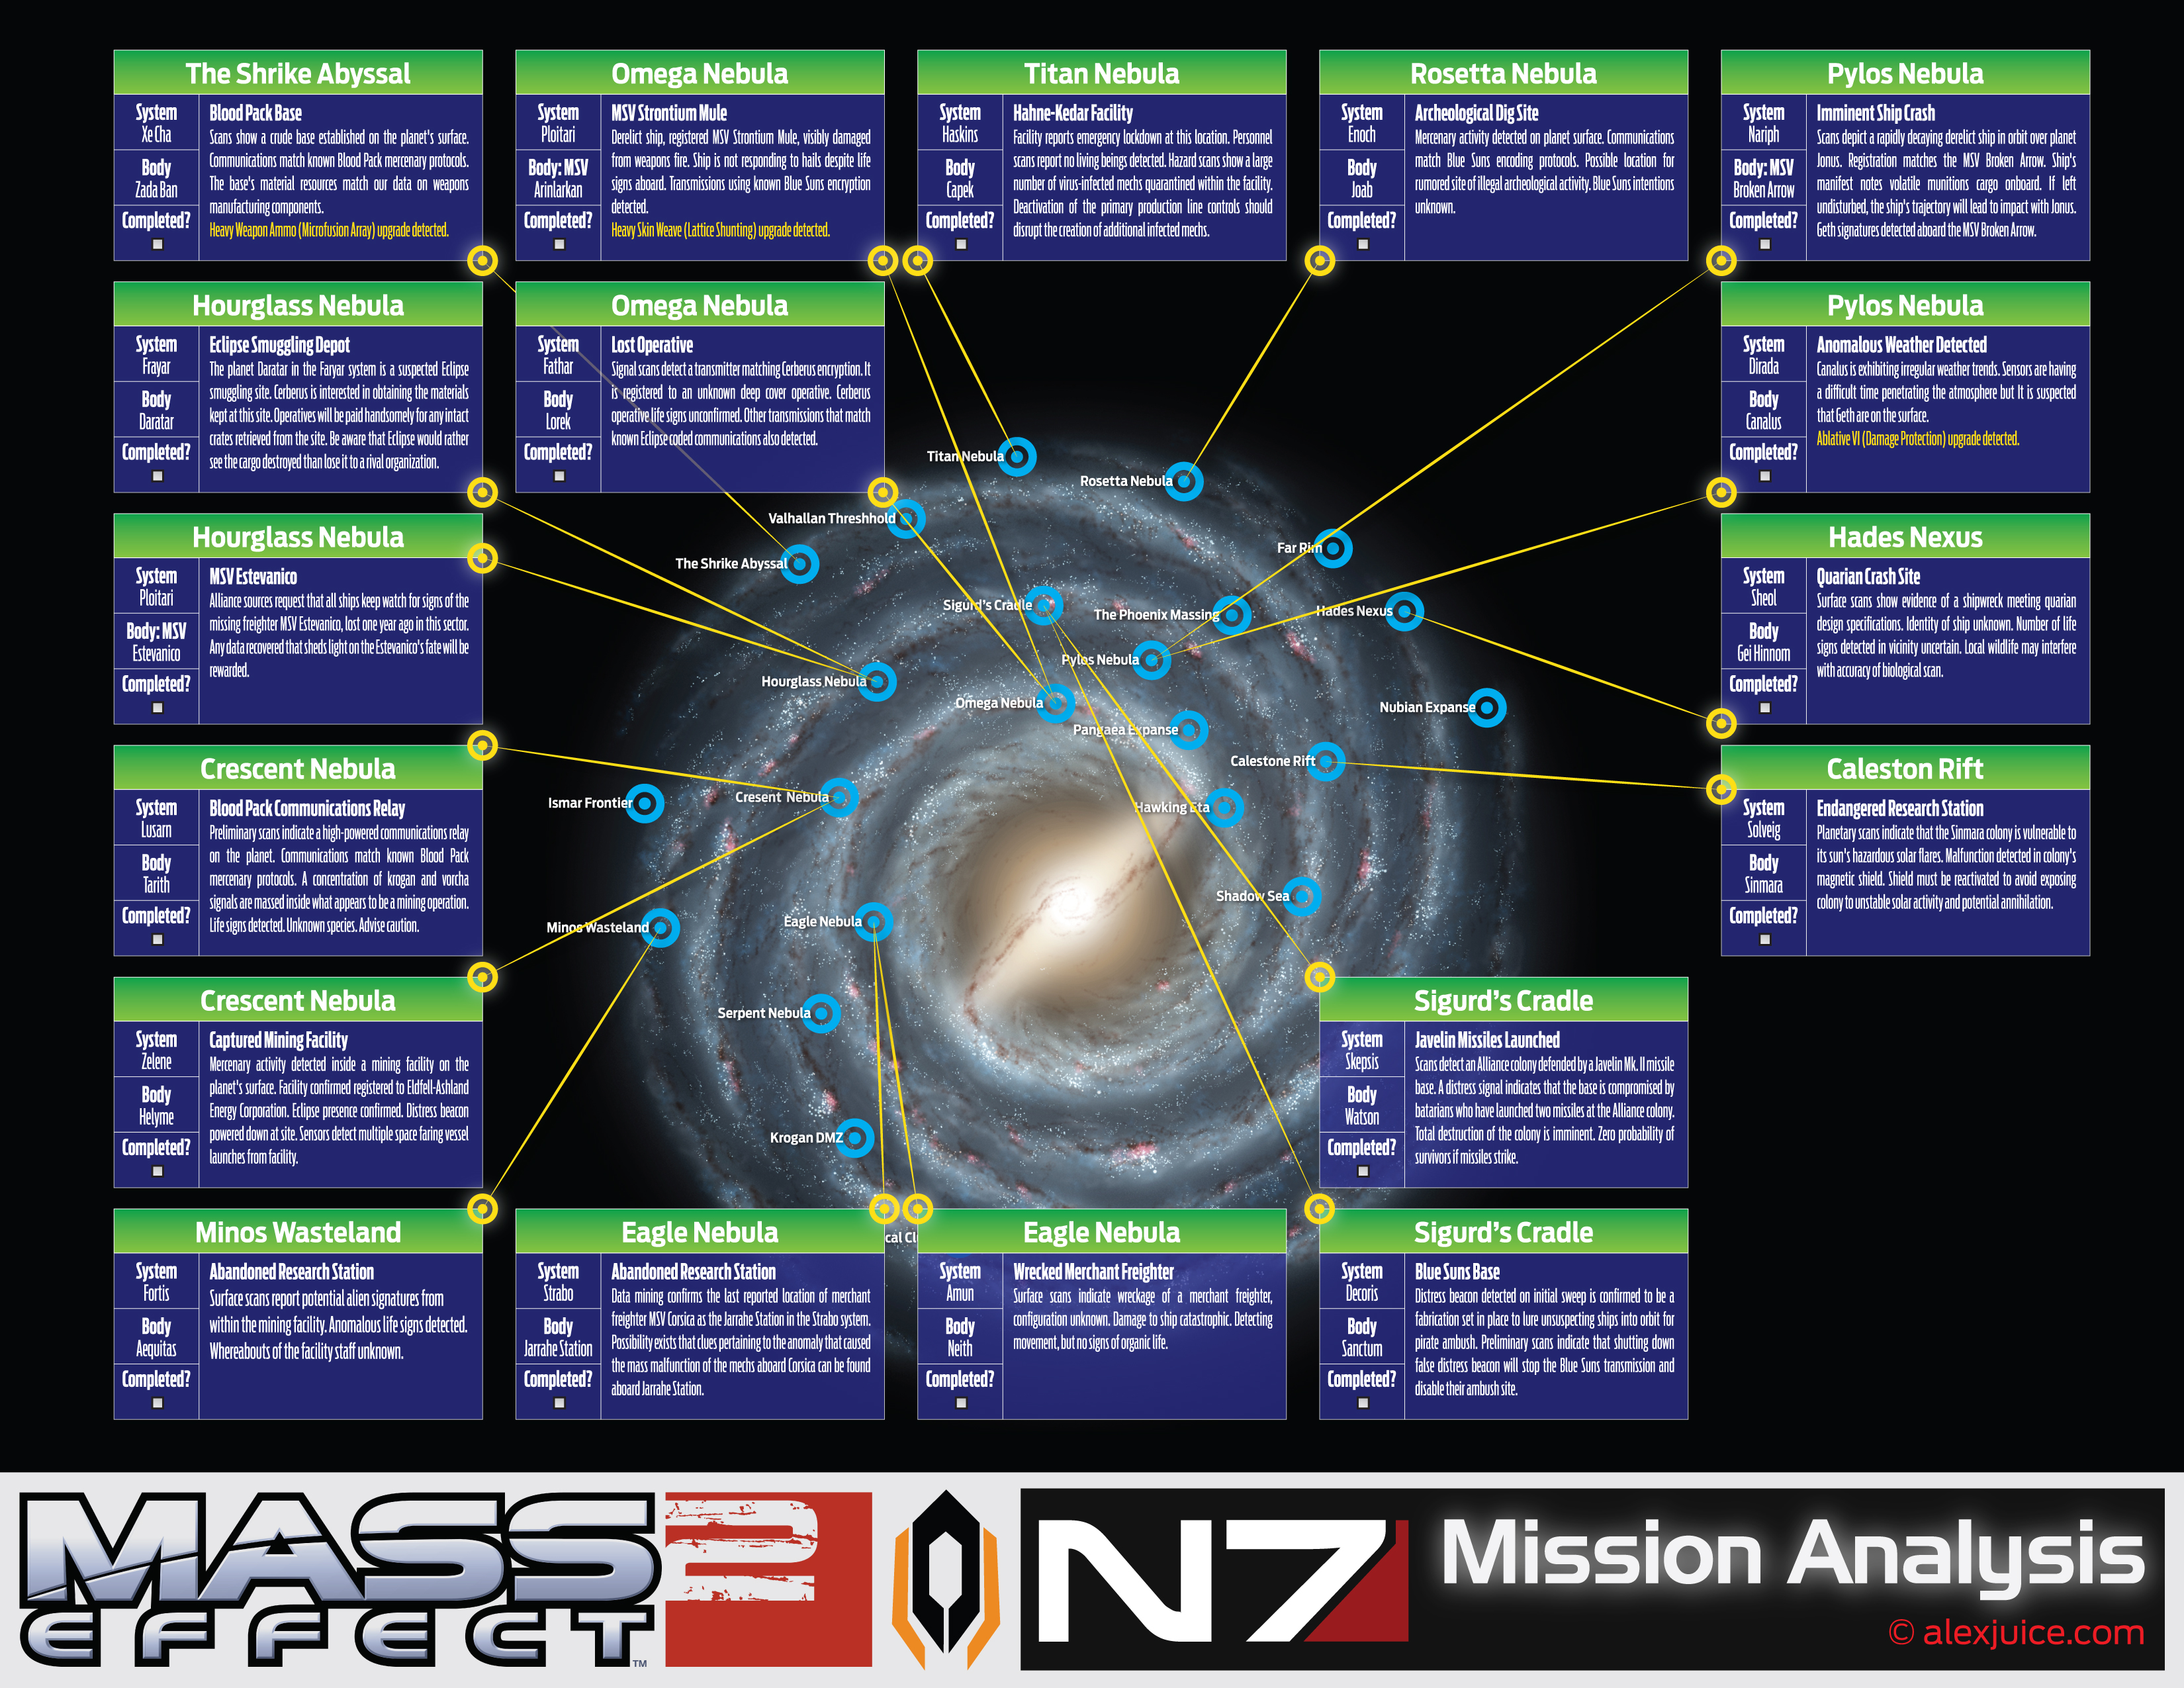 Mass effect assignments